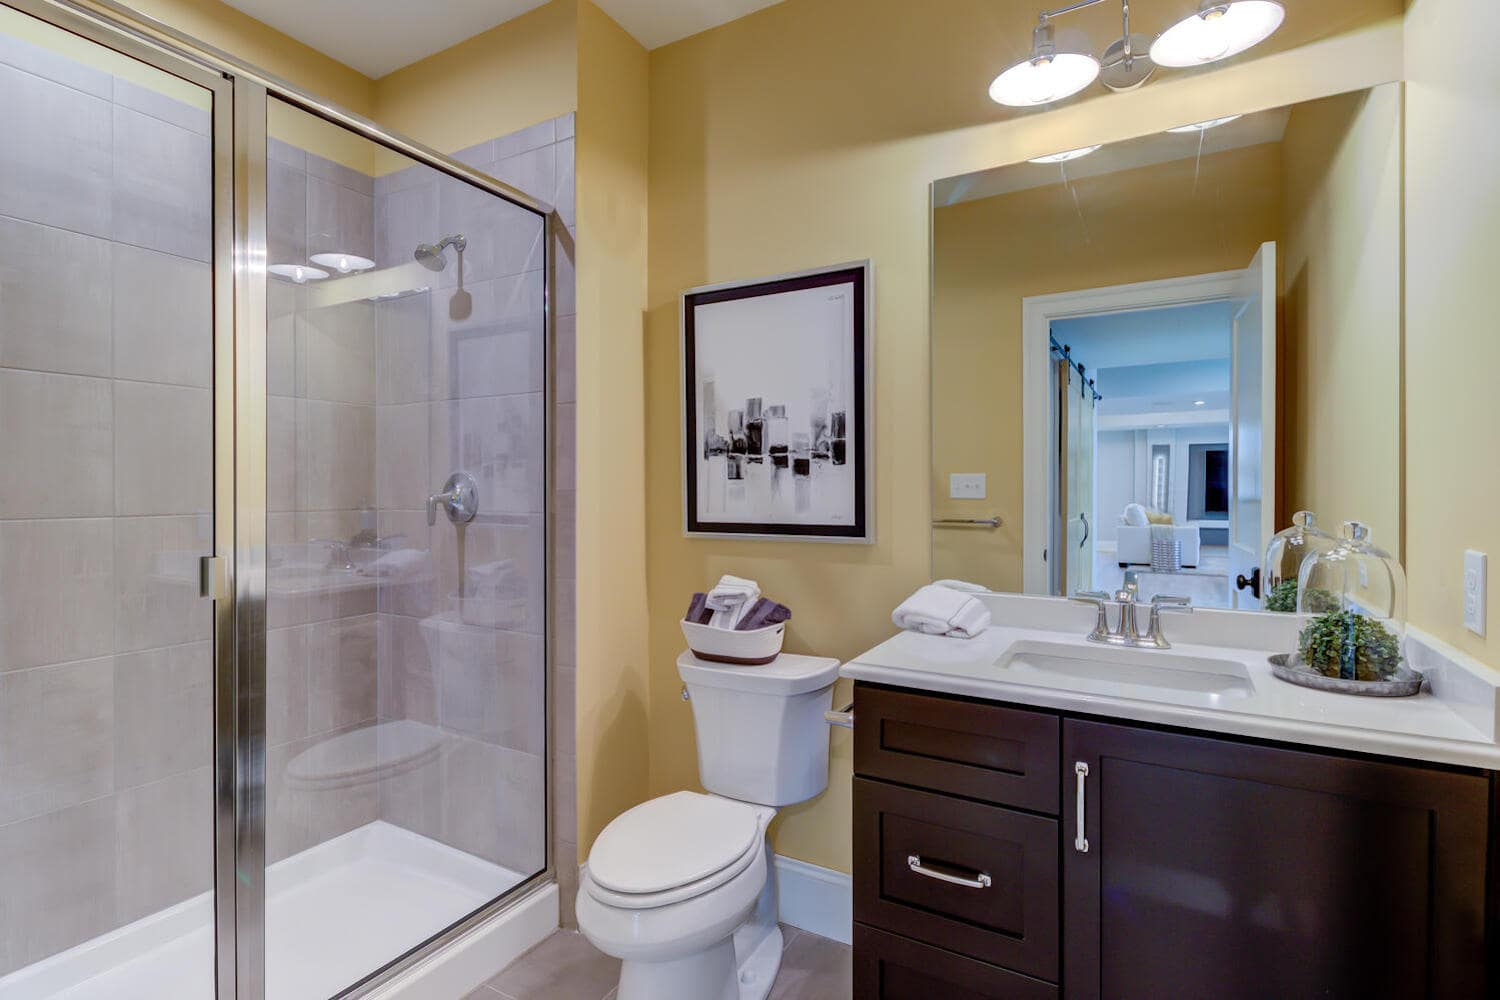 Bathroom in a new home in Wayne from Bentley Homes.